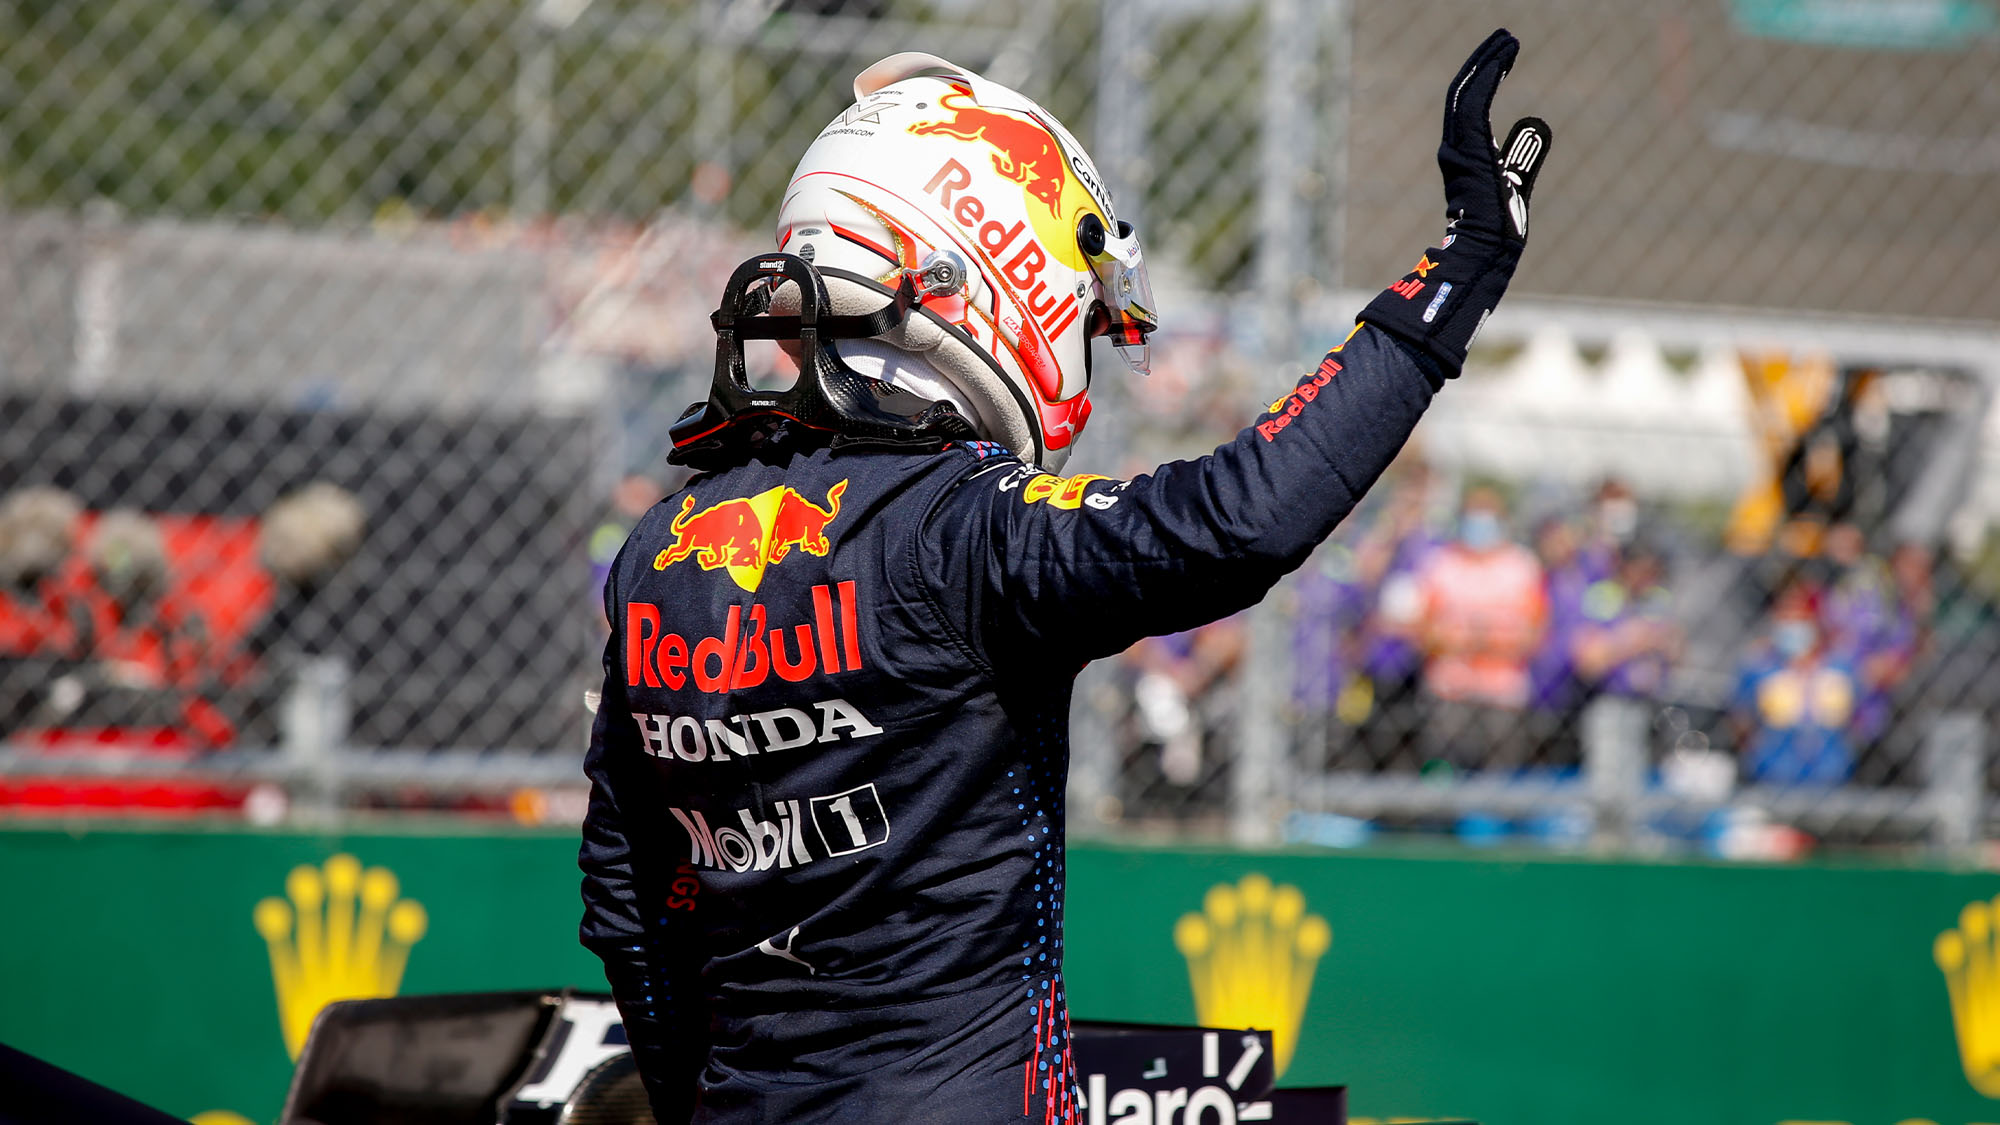 VERSTAPPEN Max (ned), Red Bull Racing Honda RB16B, portrait during the Formula 1 Magyar Nagydij 2021, Hungarian Grand Prix, 11th round of the 2021 FIA Formula One World Championship from July 30 to August 1, 2021 on the Hungaroring, in Mogyorod, near Budapest, Hungary - Photo DPPI